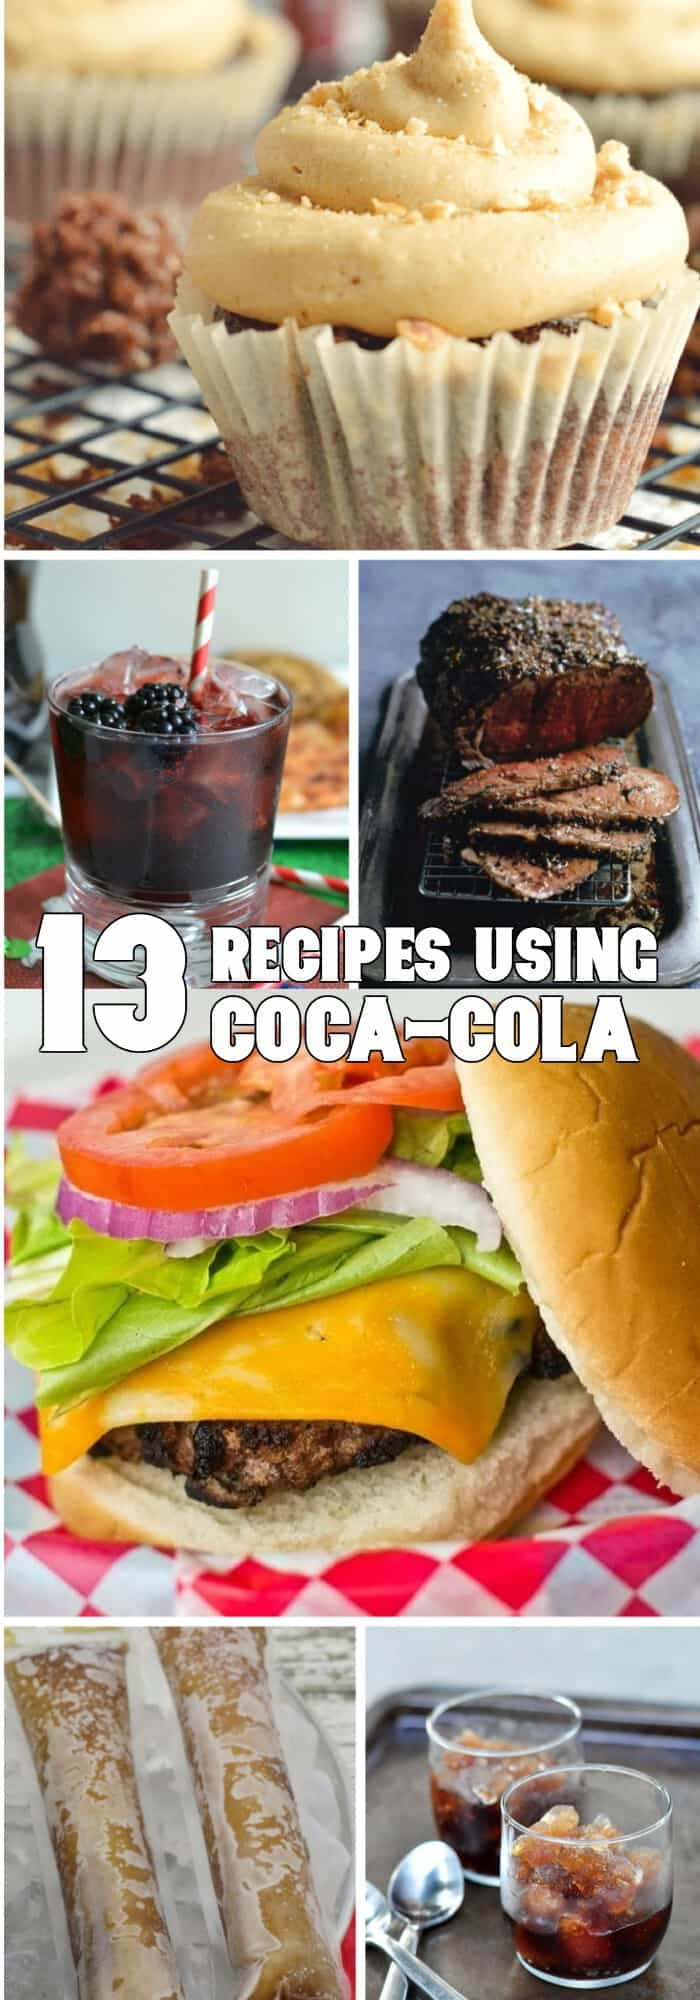 Oh, I can't wait to feast on the delights of these 13 Recipes using Coca Cola! #coke #cocacola #recipe #recipes #food #tasty